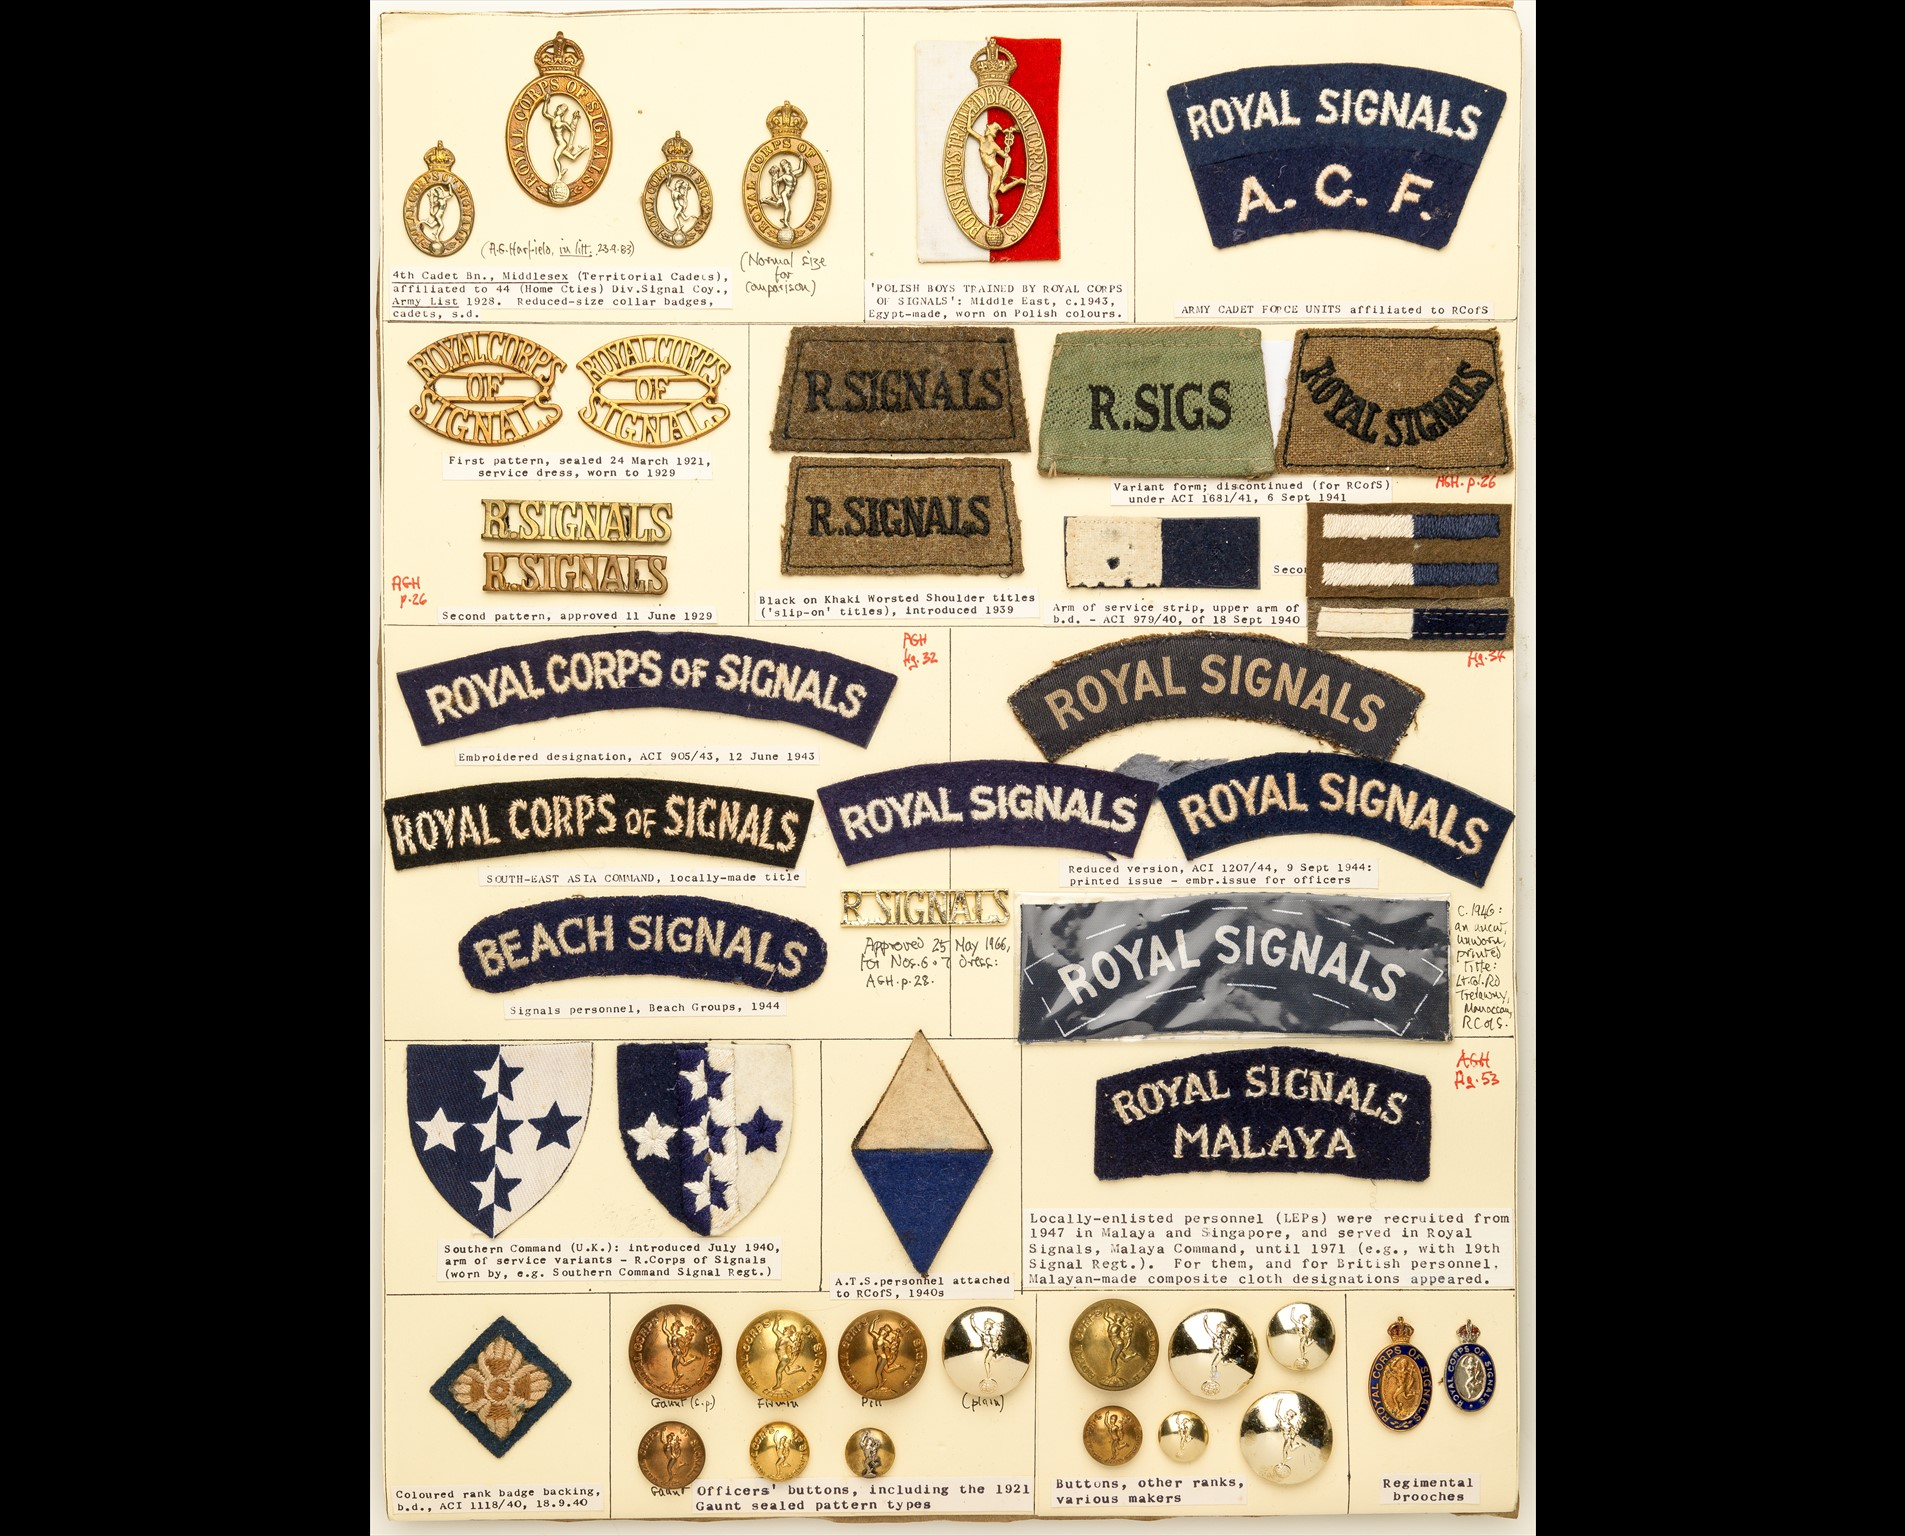 Royal Corps of Signals Insignia A card mounted with metal cap and collar-badges and shoulder-